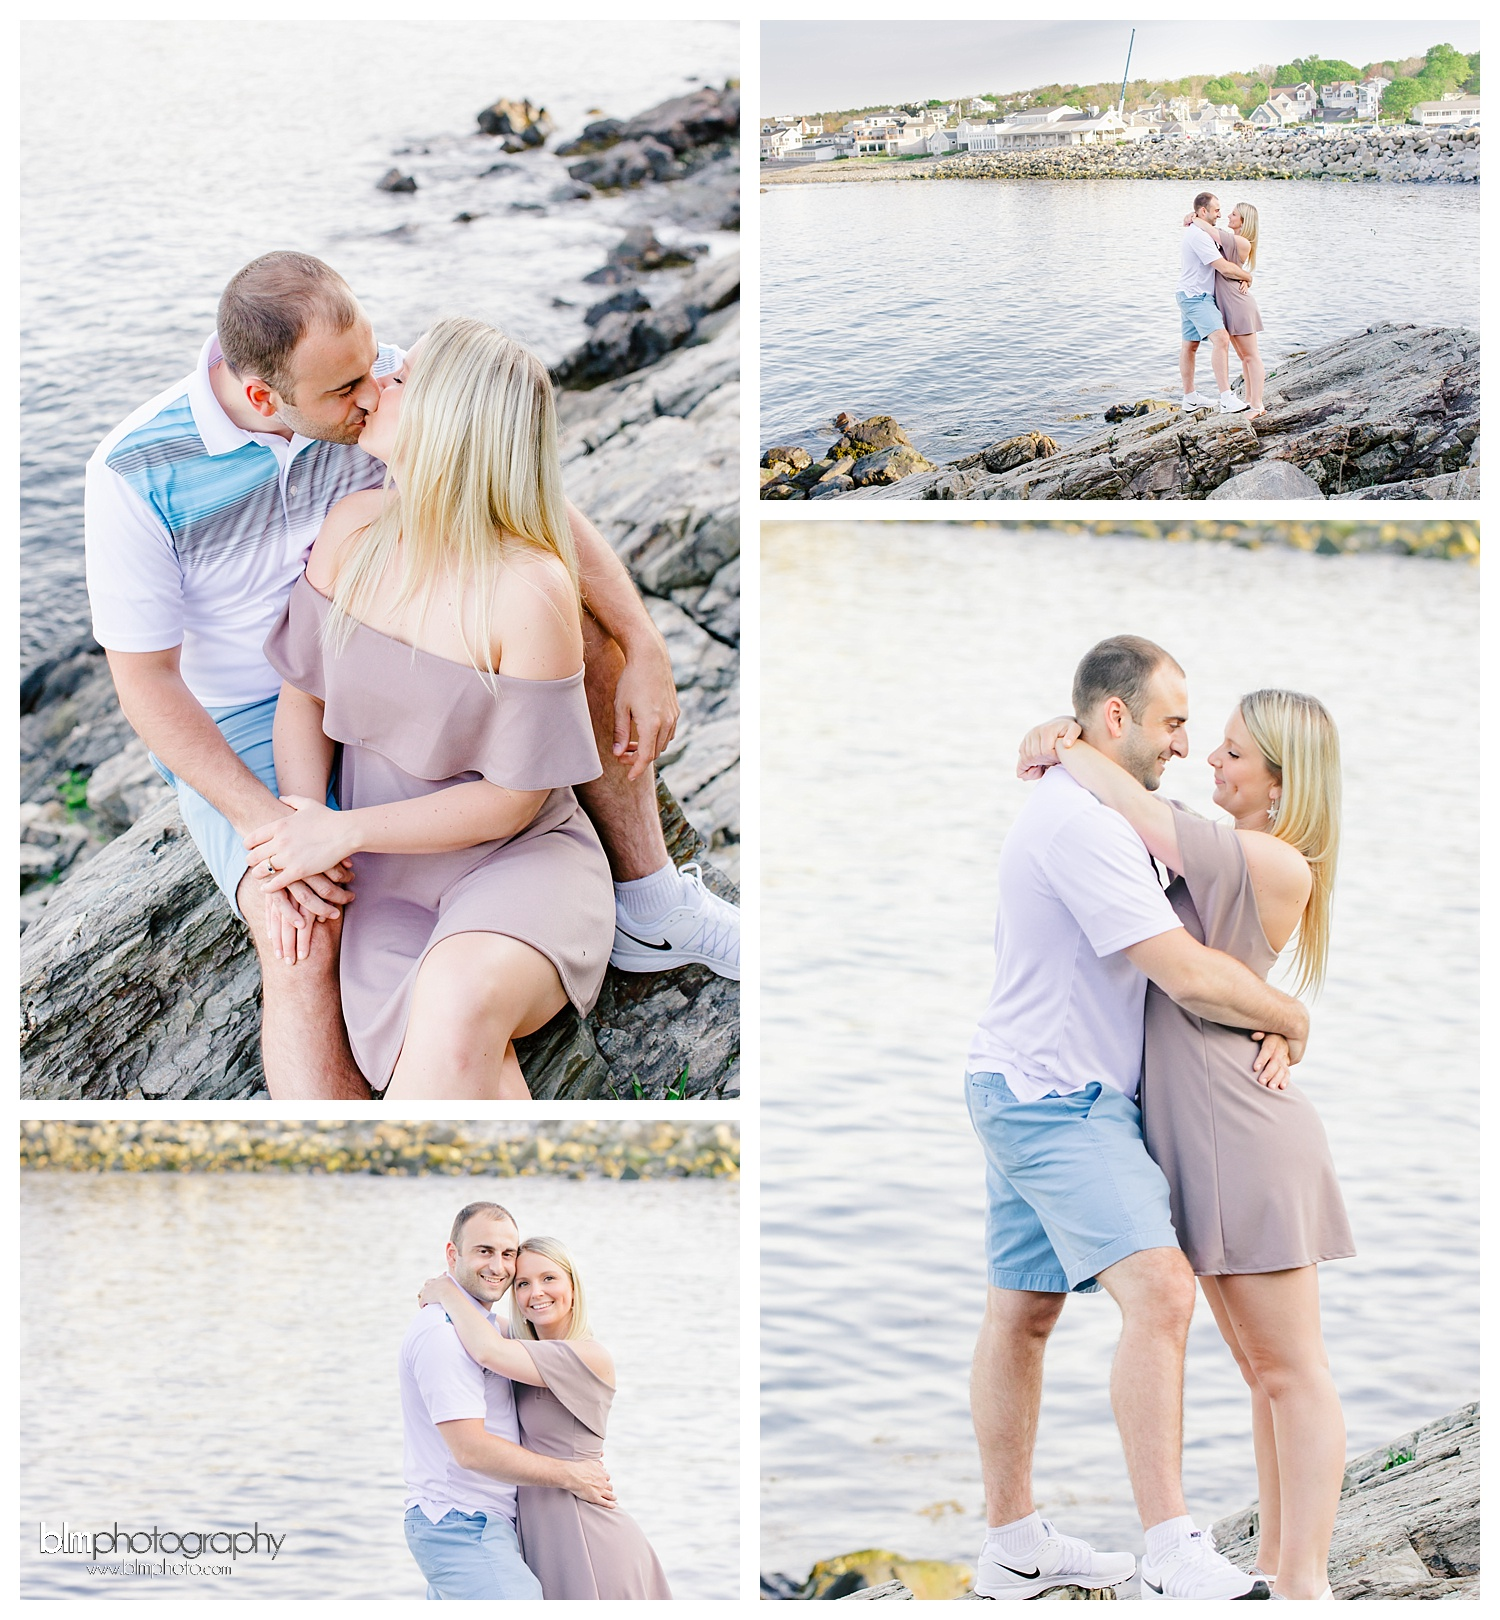 065Sarah-Jimmy-Engagement-9285-2.jpg